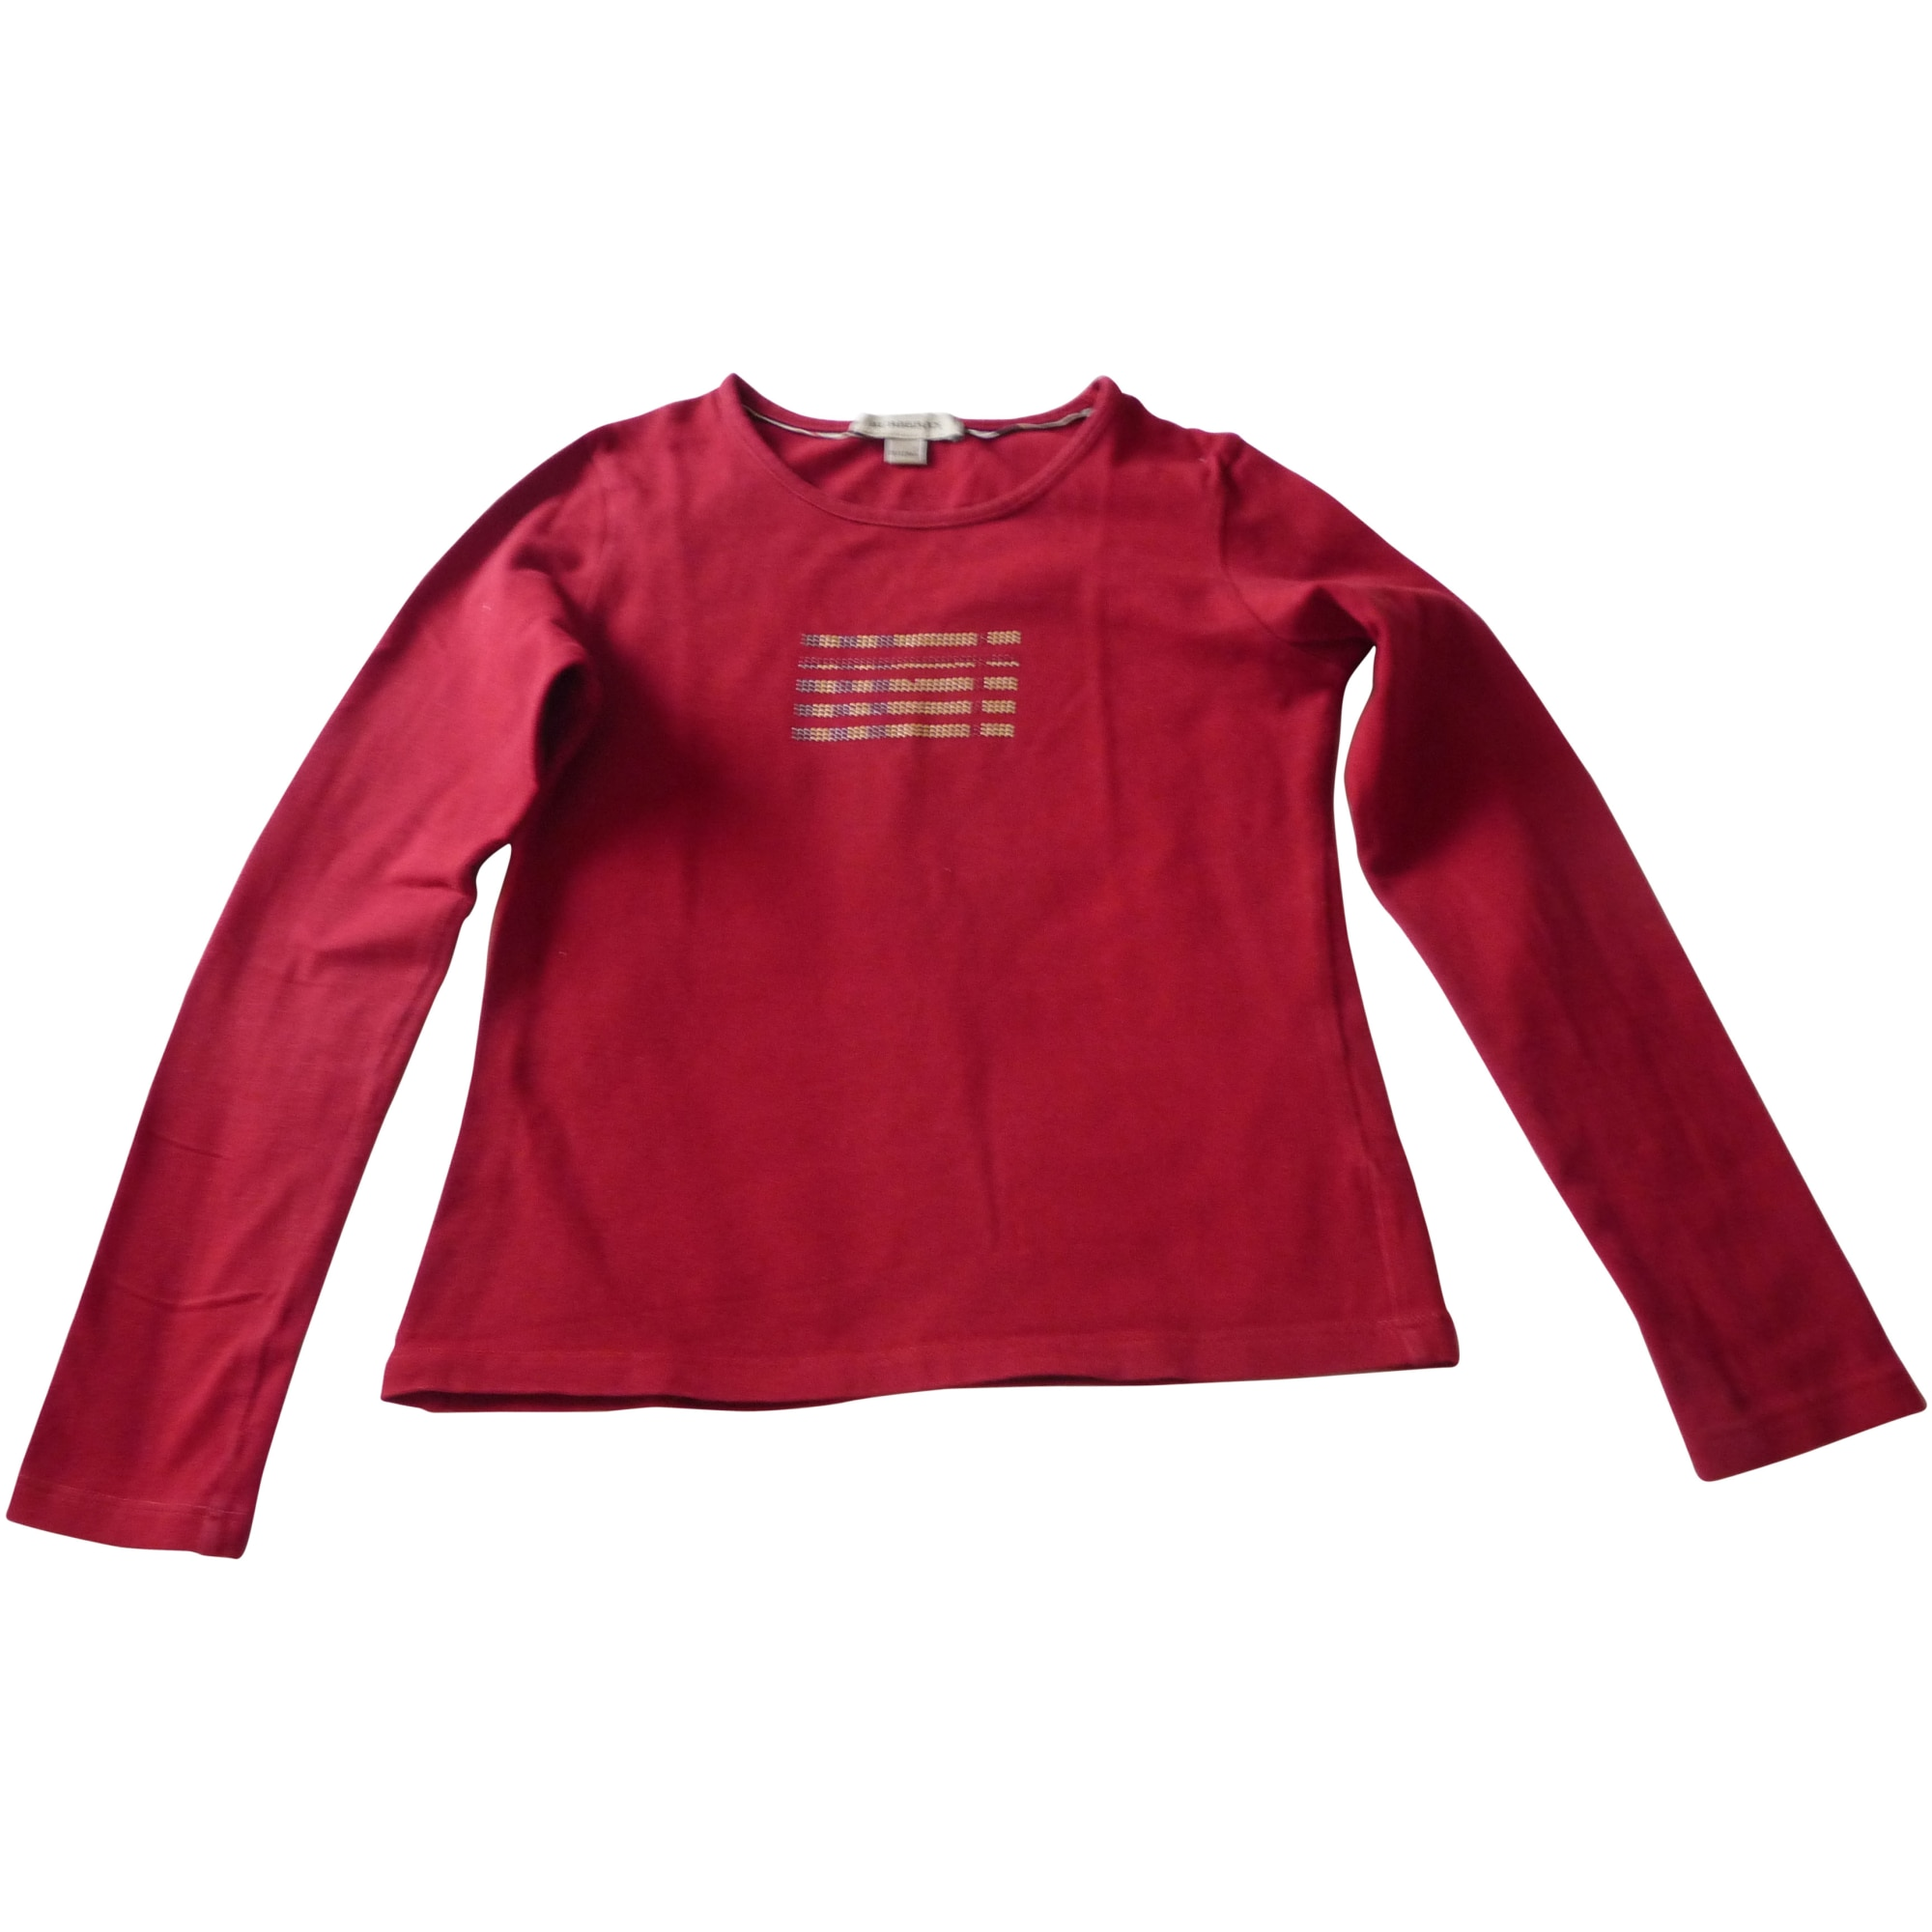 Top, Tee-shirt BURBERRY Rouge, bordeaux